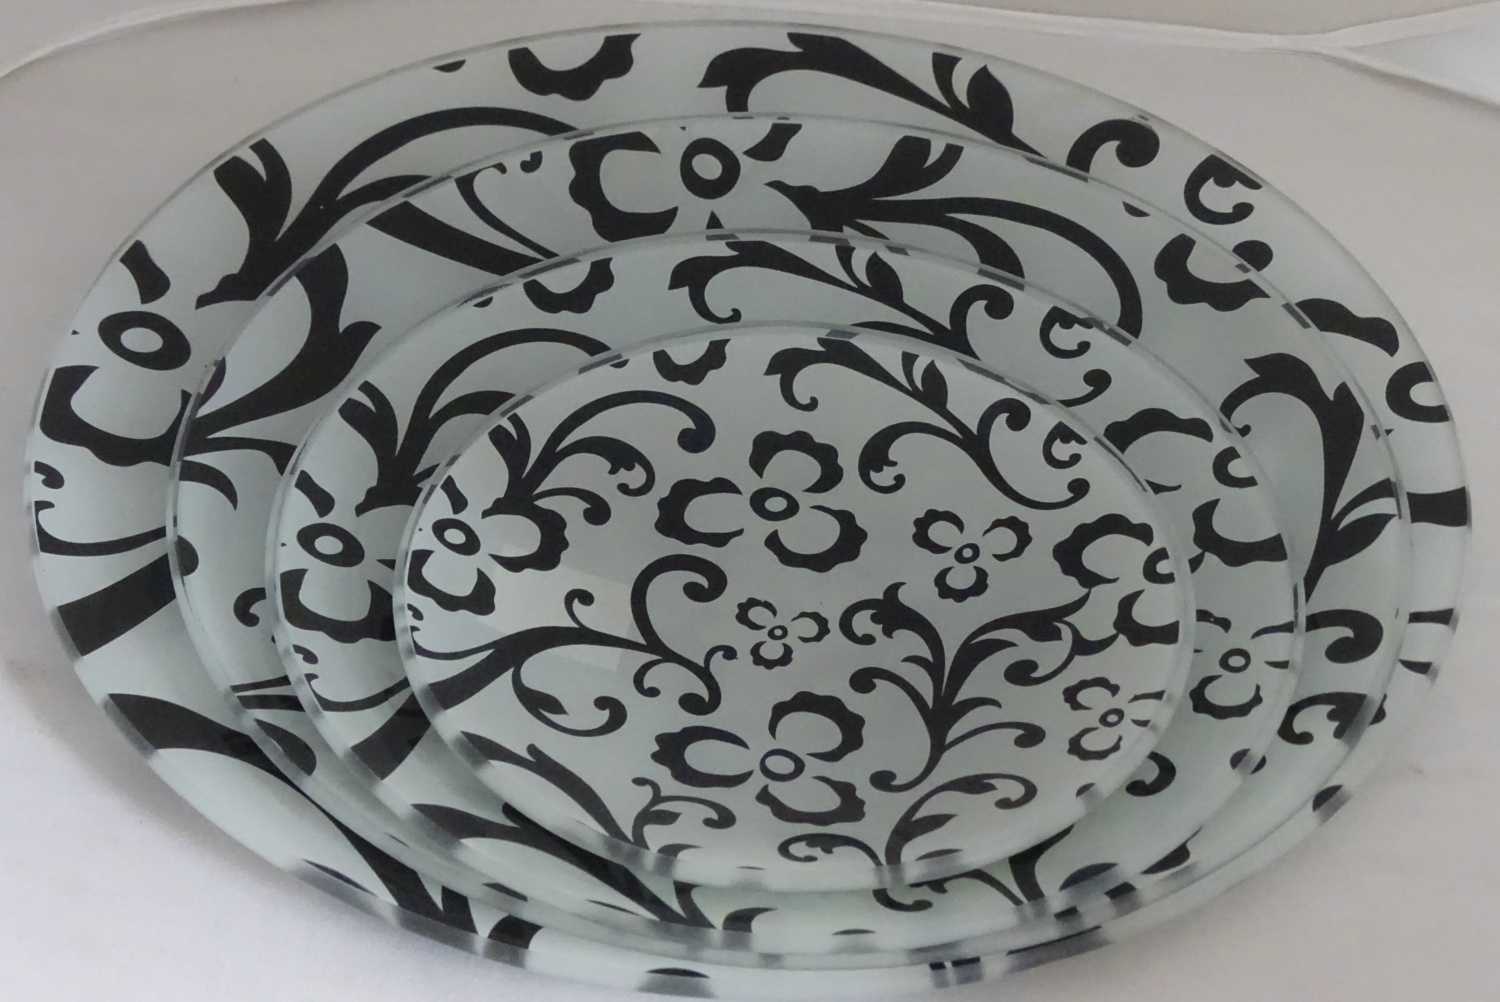 Seving Dinner Decorative Tempered Glass Plate